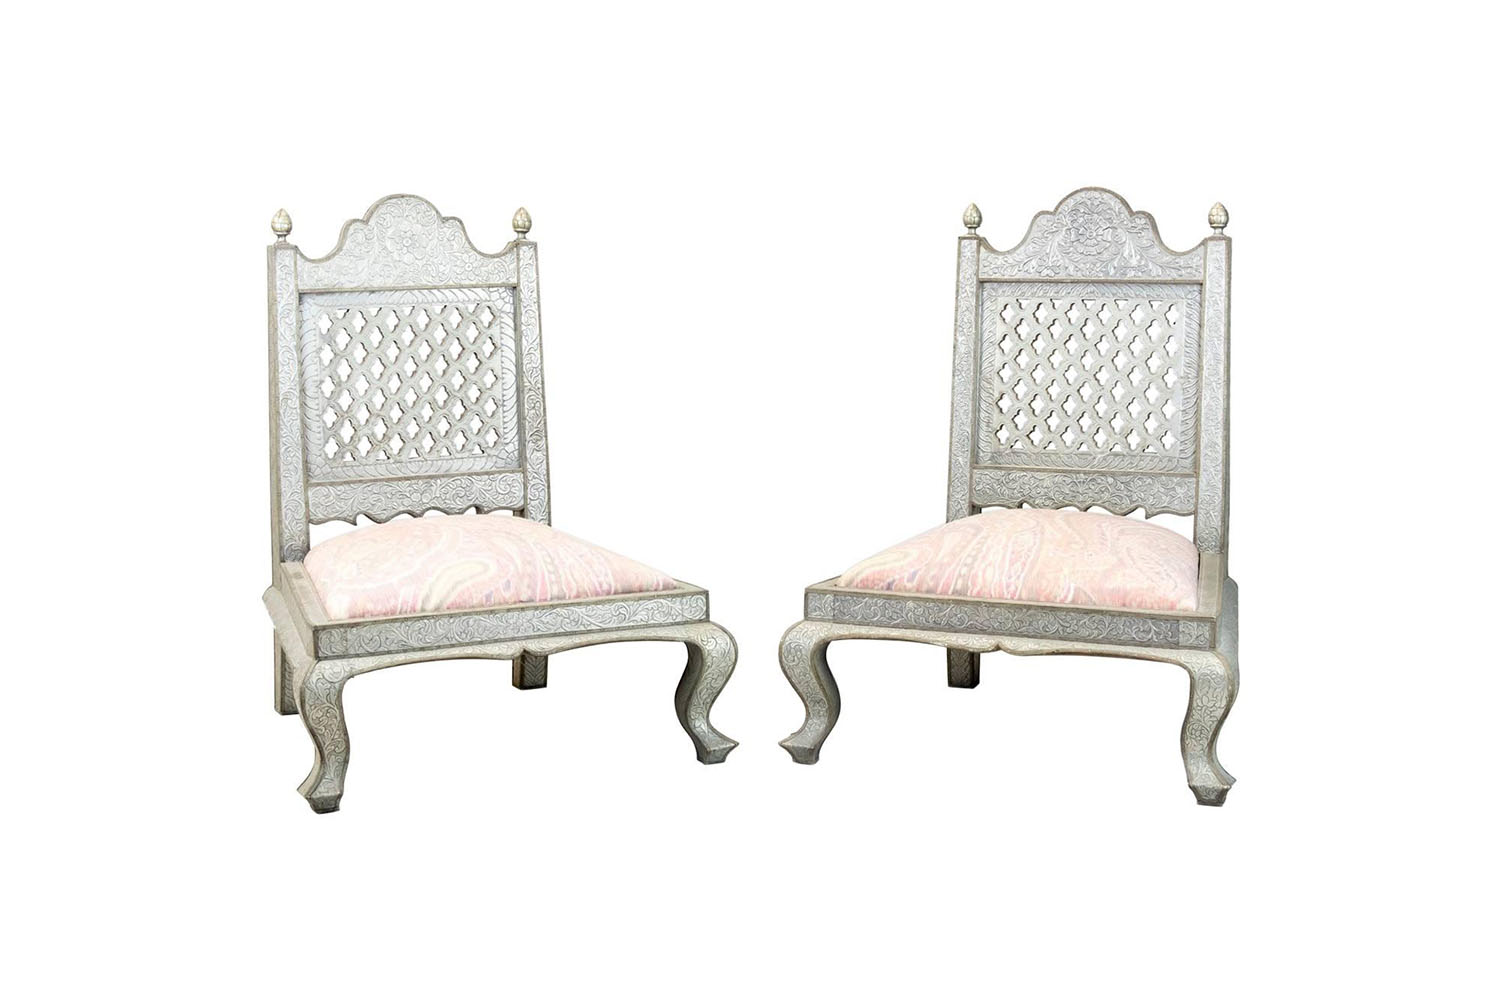 moorish style fireside chairs - Pair Of Moorish Style Fireside Chairs Decorated In Repousse, Circa